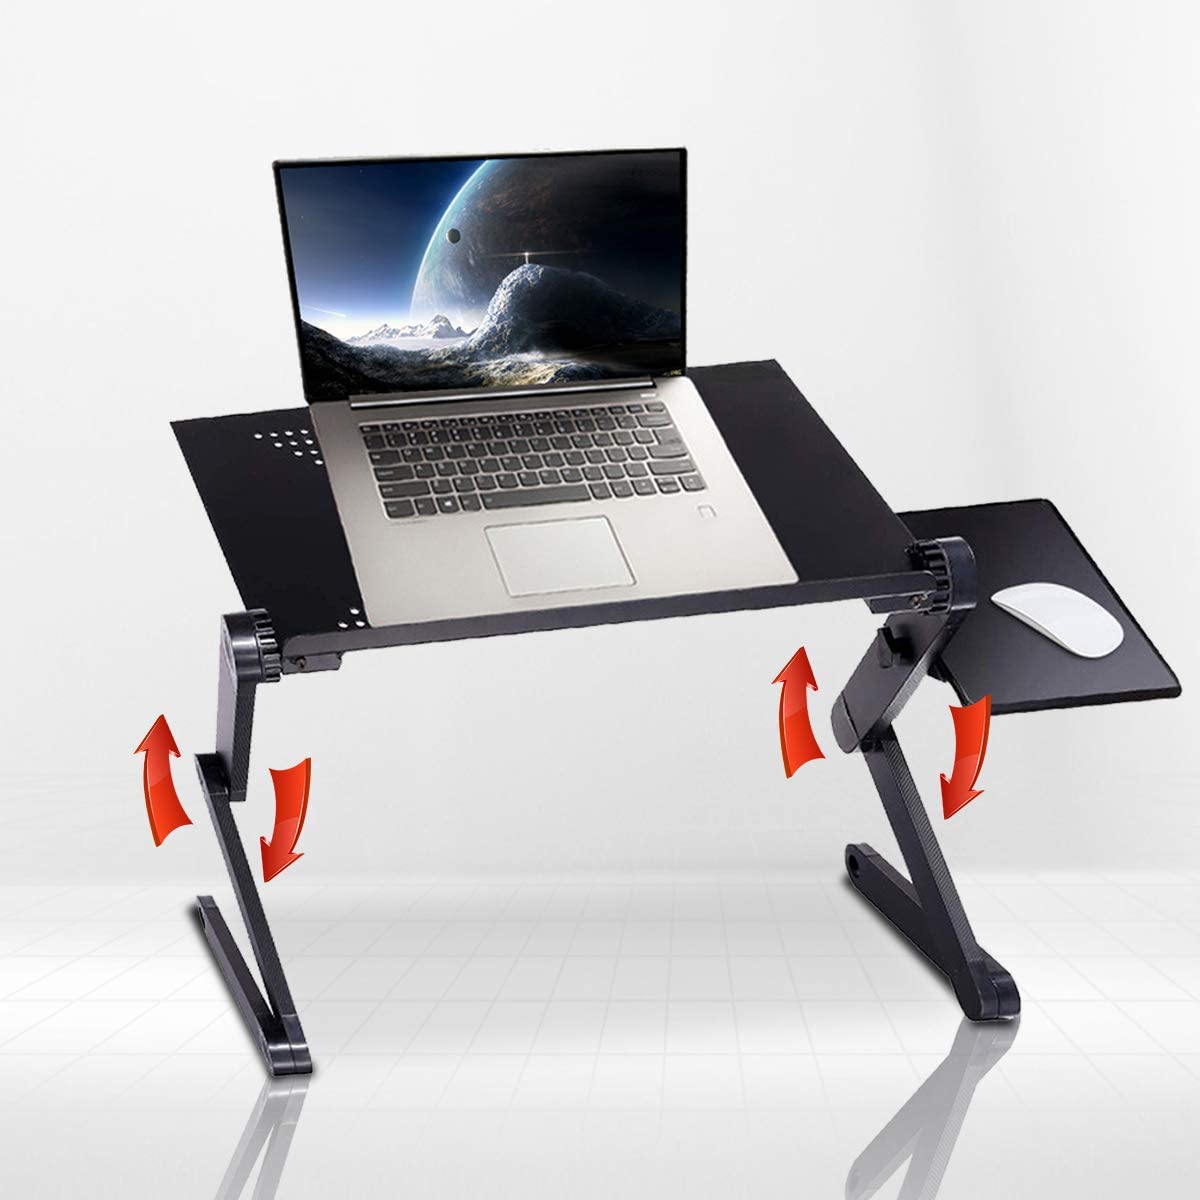 Adjustable Laptop Table Stand, Portable Laptop Workstation Stand, Foldable Aluminum Alloy Ergonomic Office Laptop Desk with USB Large Cooling Fan and Mouse Pad for Bed Cozy Sofa Couch Lap